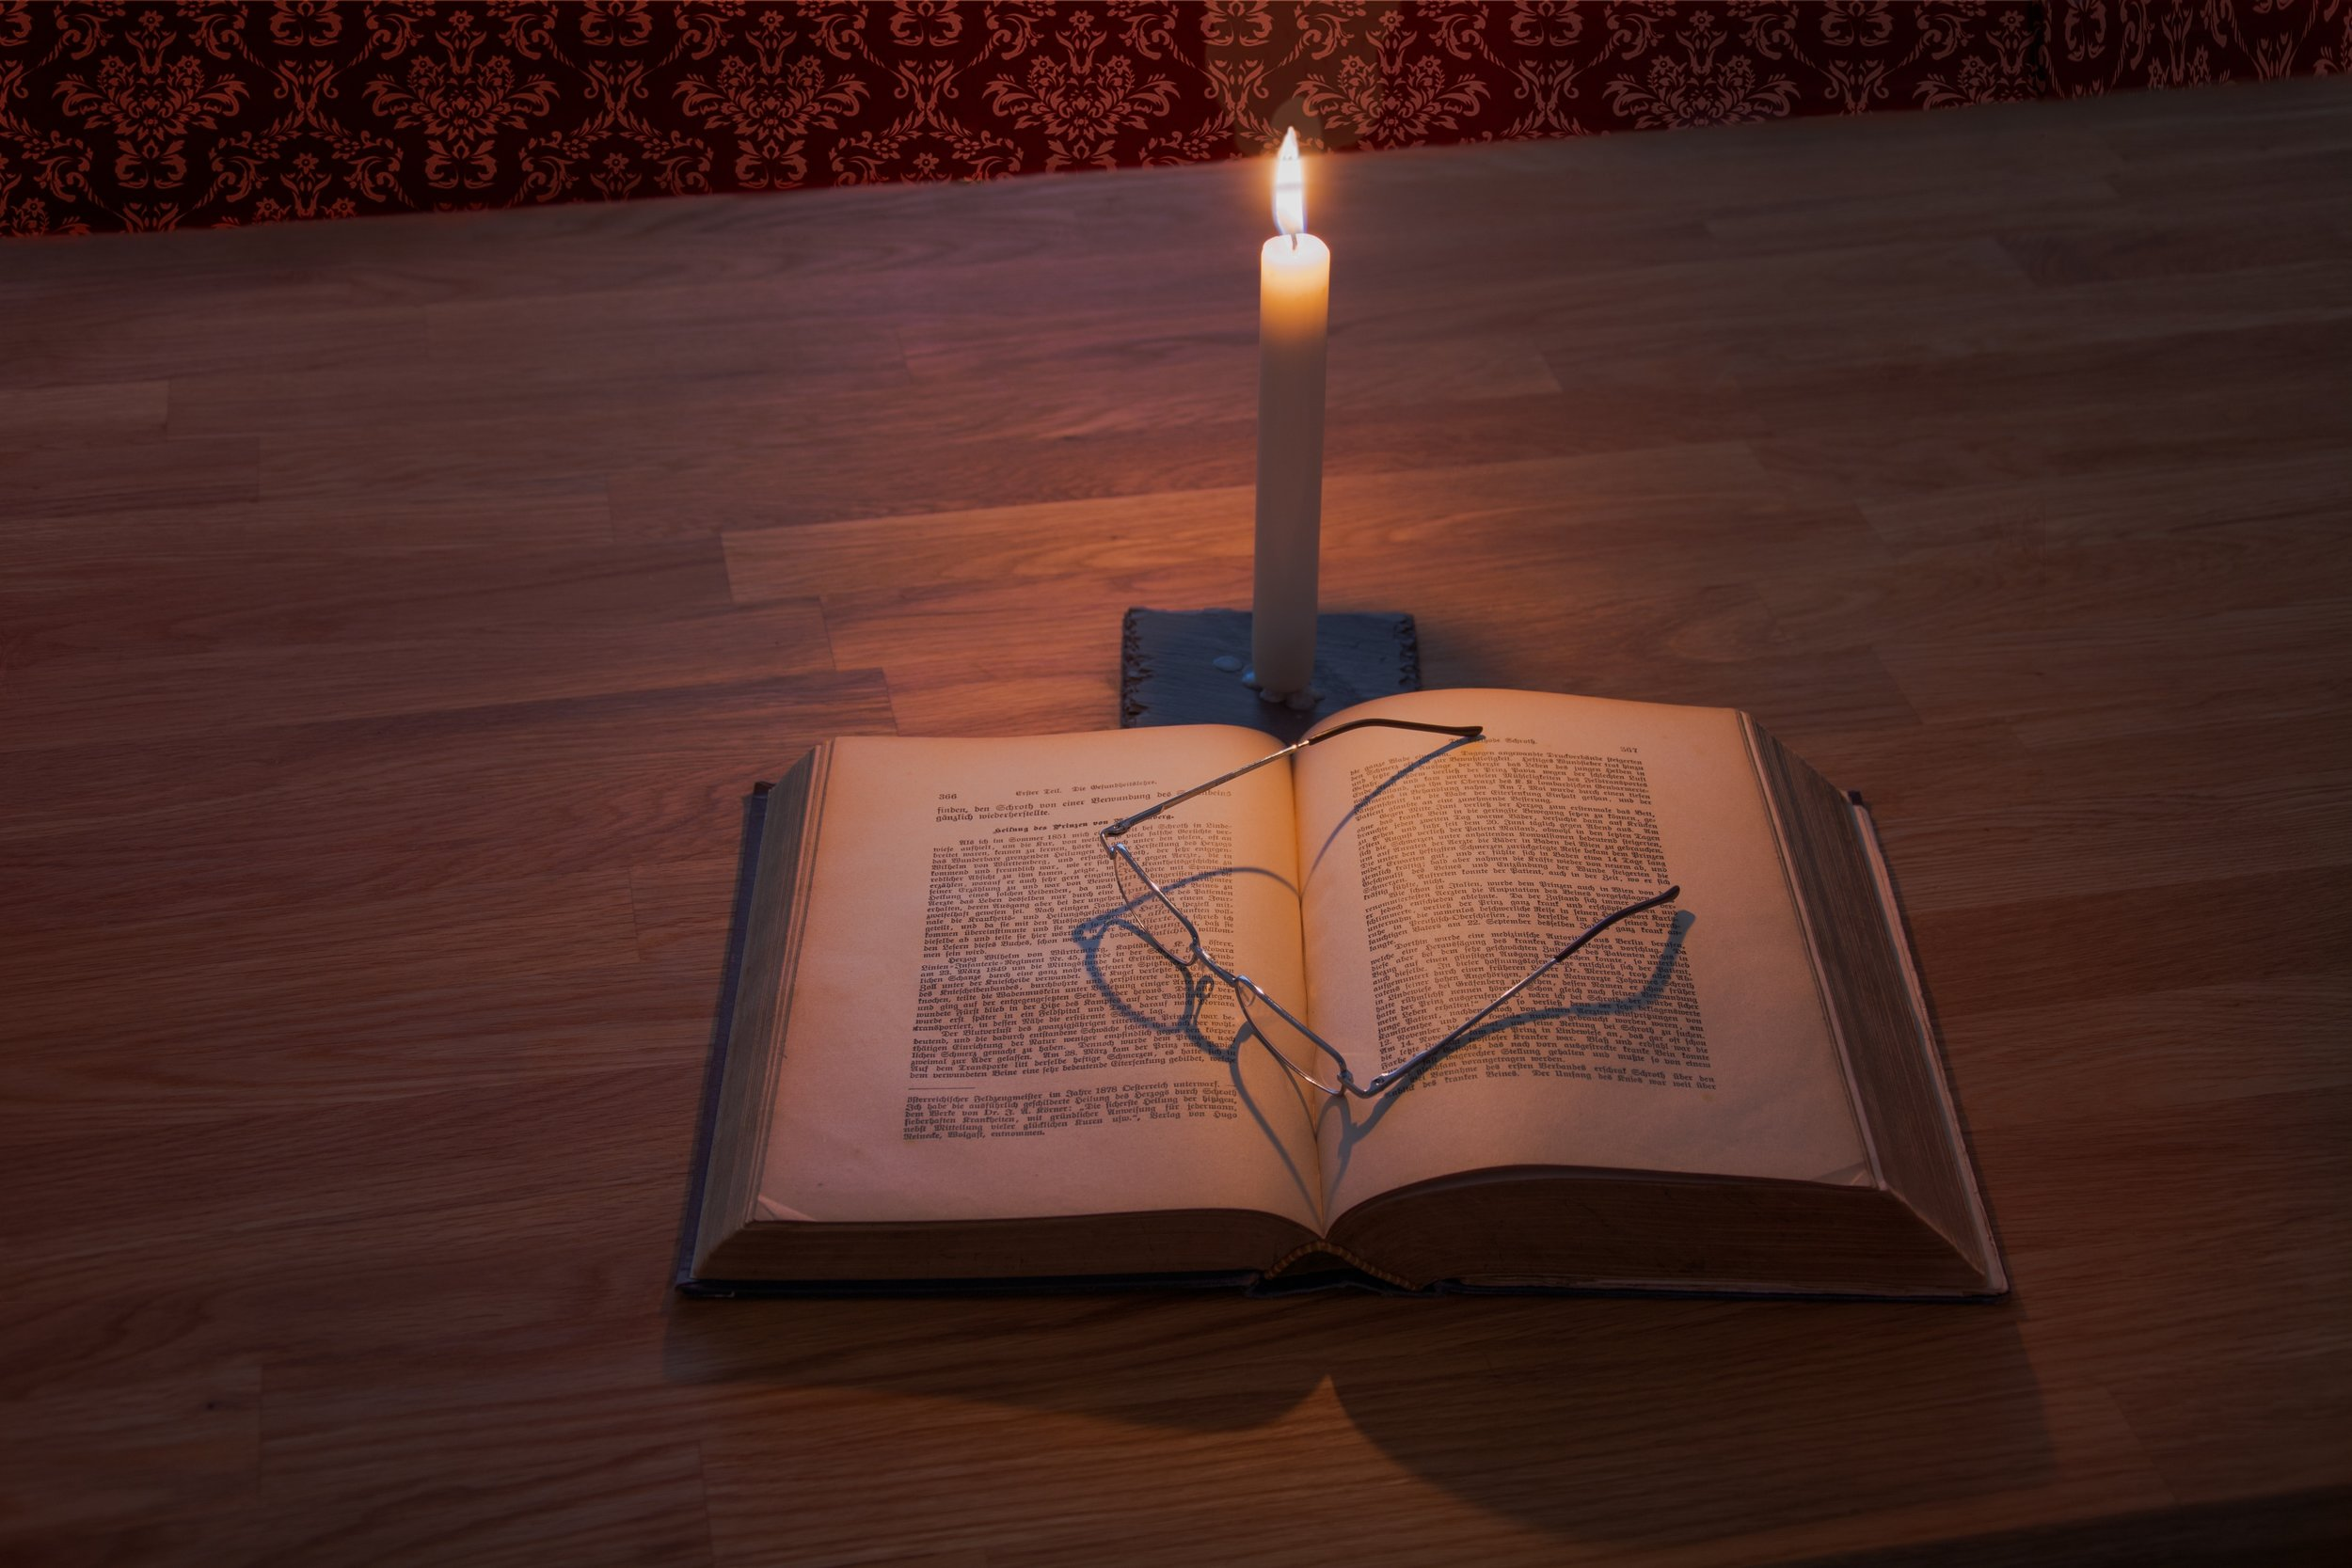 bible-book-candle-256560.jpg